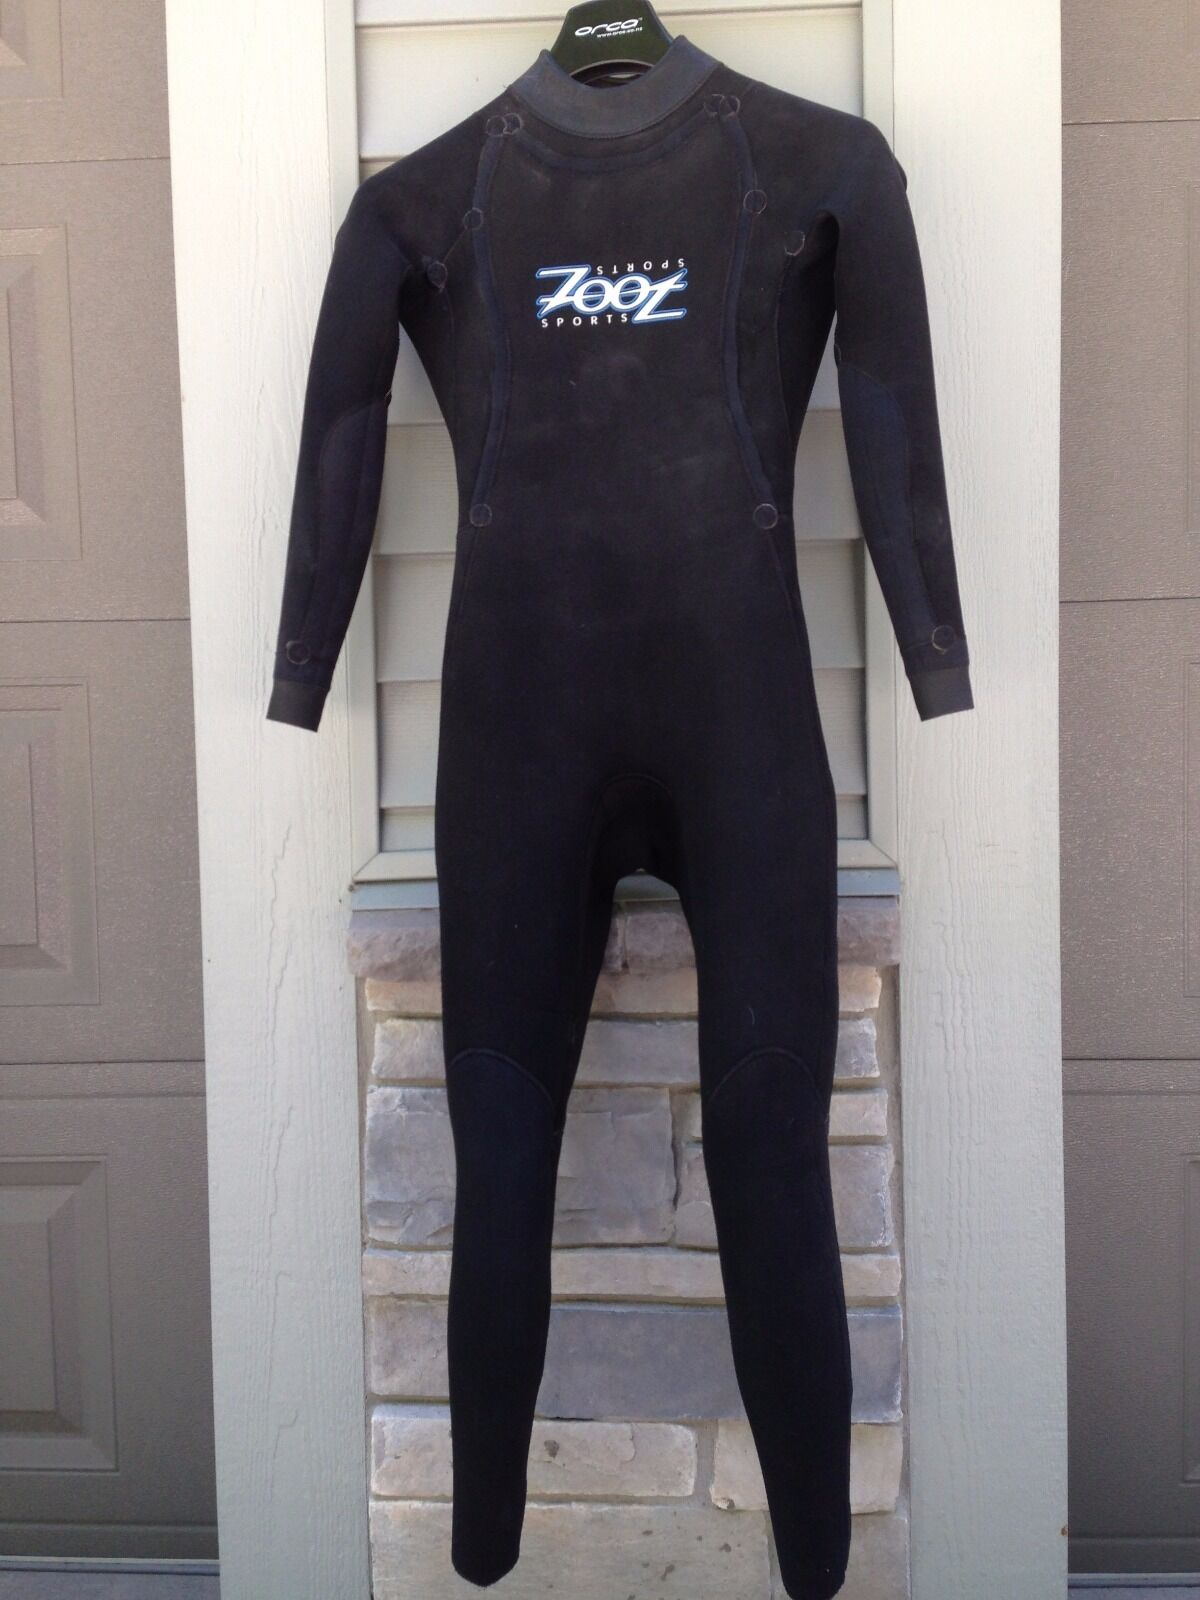 Zoot Sports Women's Wetzoot Wetsuit, size small, full  long sleeve suit  shop makes buying and selling